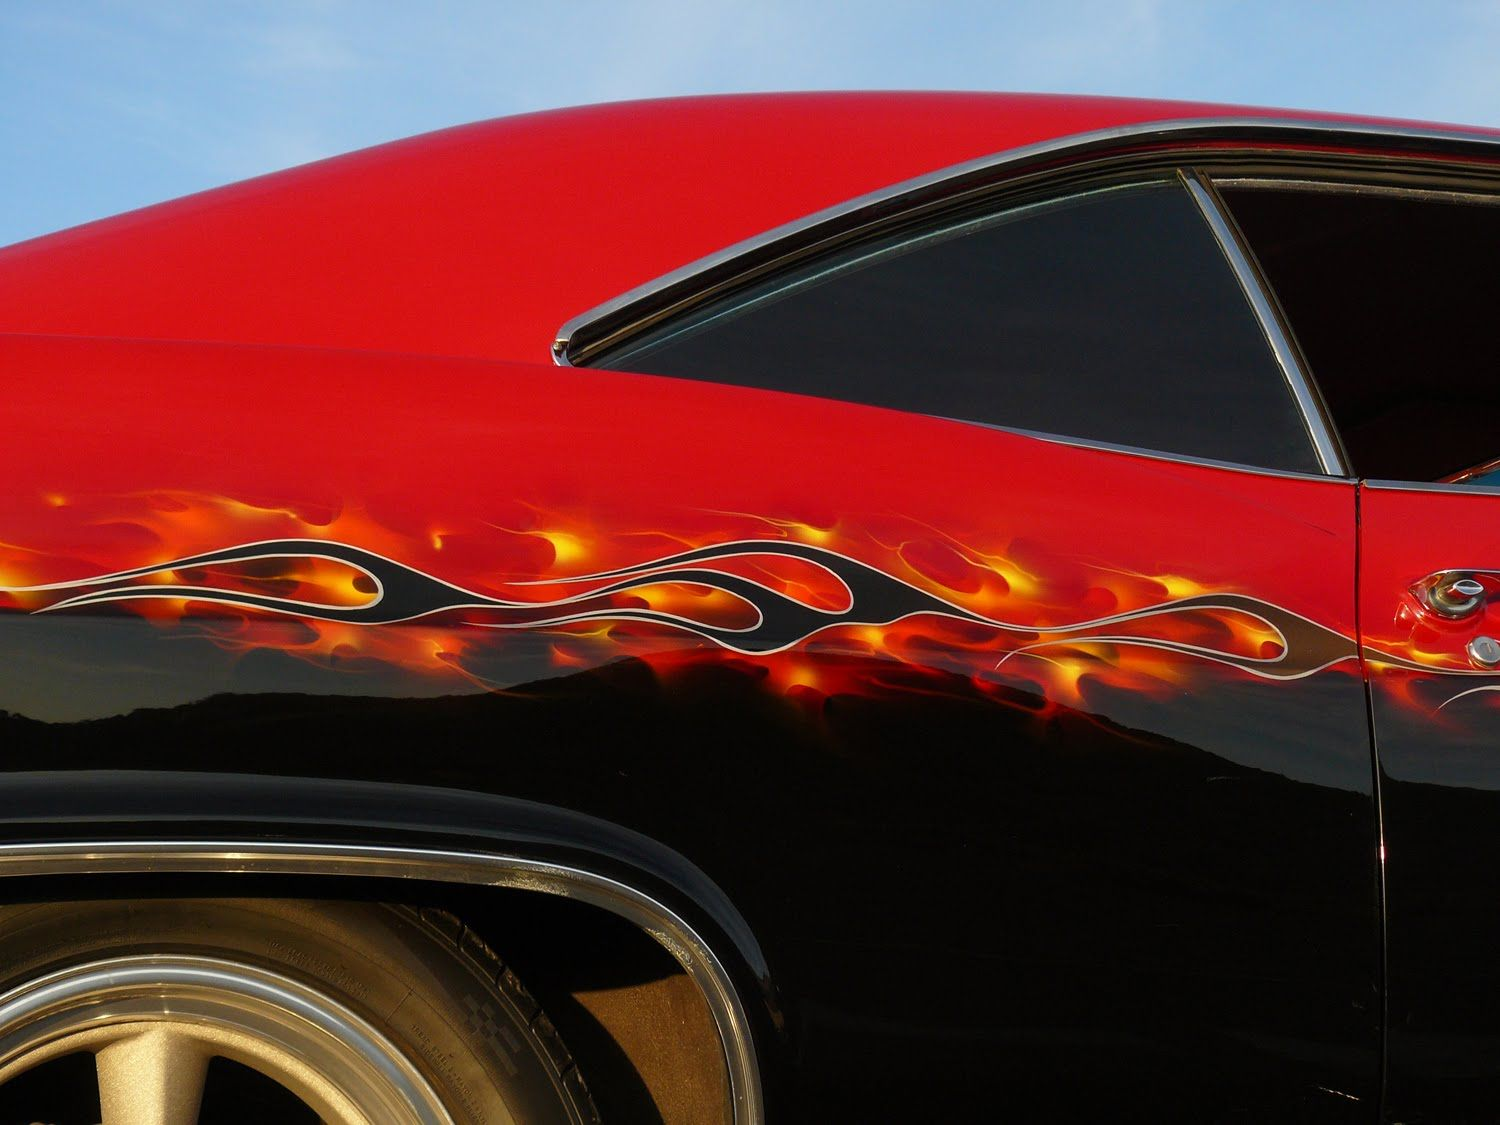 Crazy Paint Jobs Custom Flames On Cars Flame Paint Jobs On Cars Cars